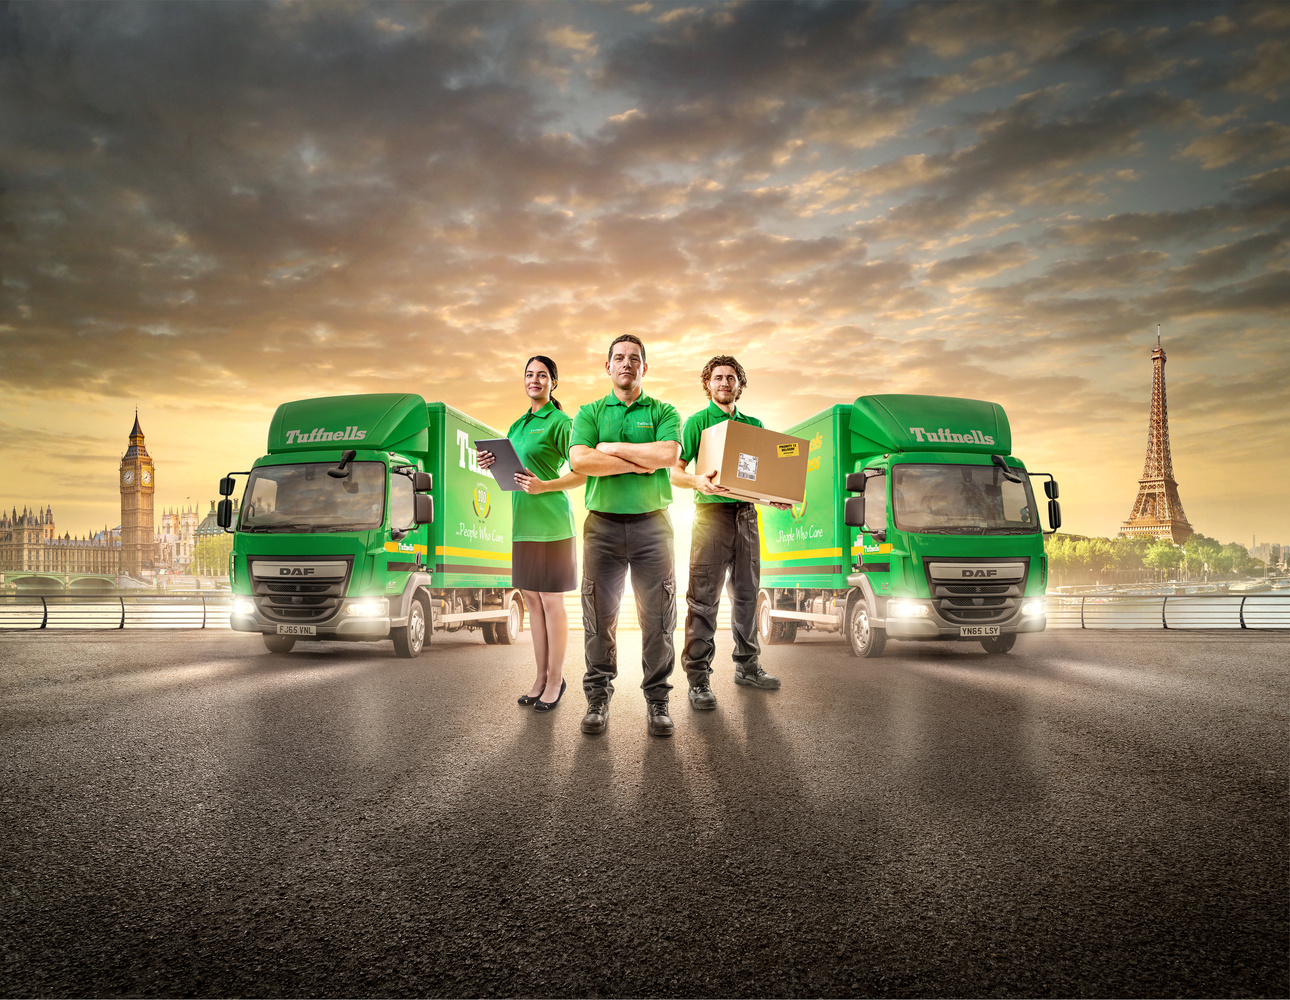 New imagery for Tuffnells Parcel Delivery by Chris Doyle